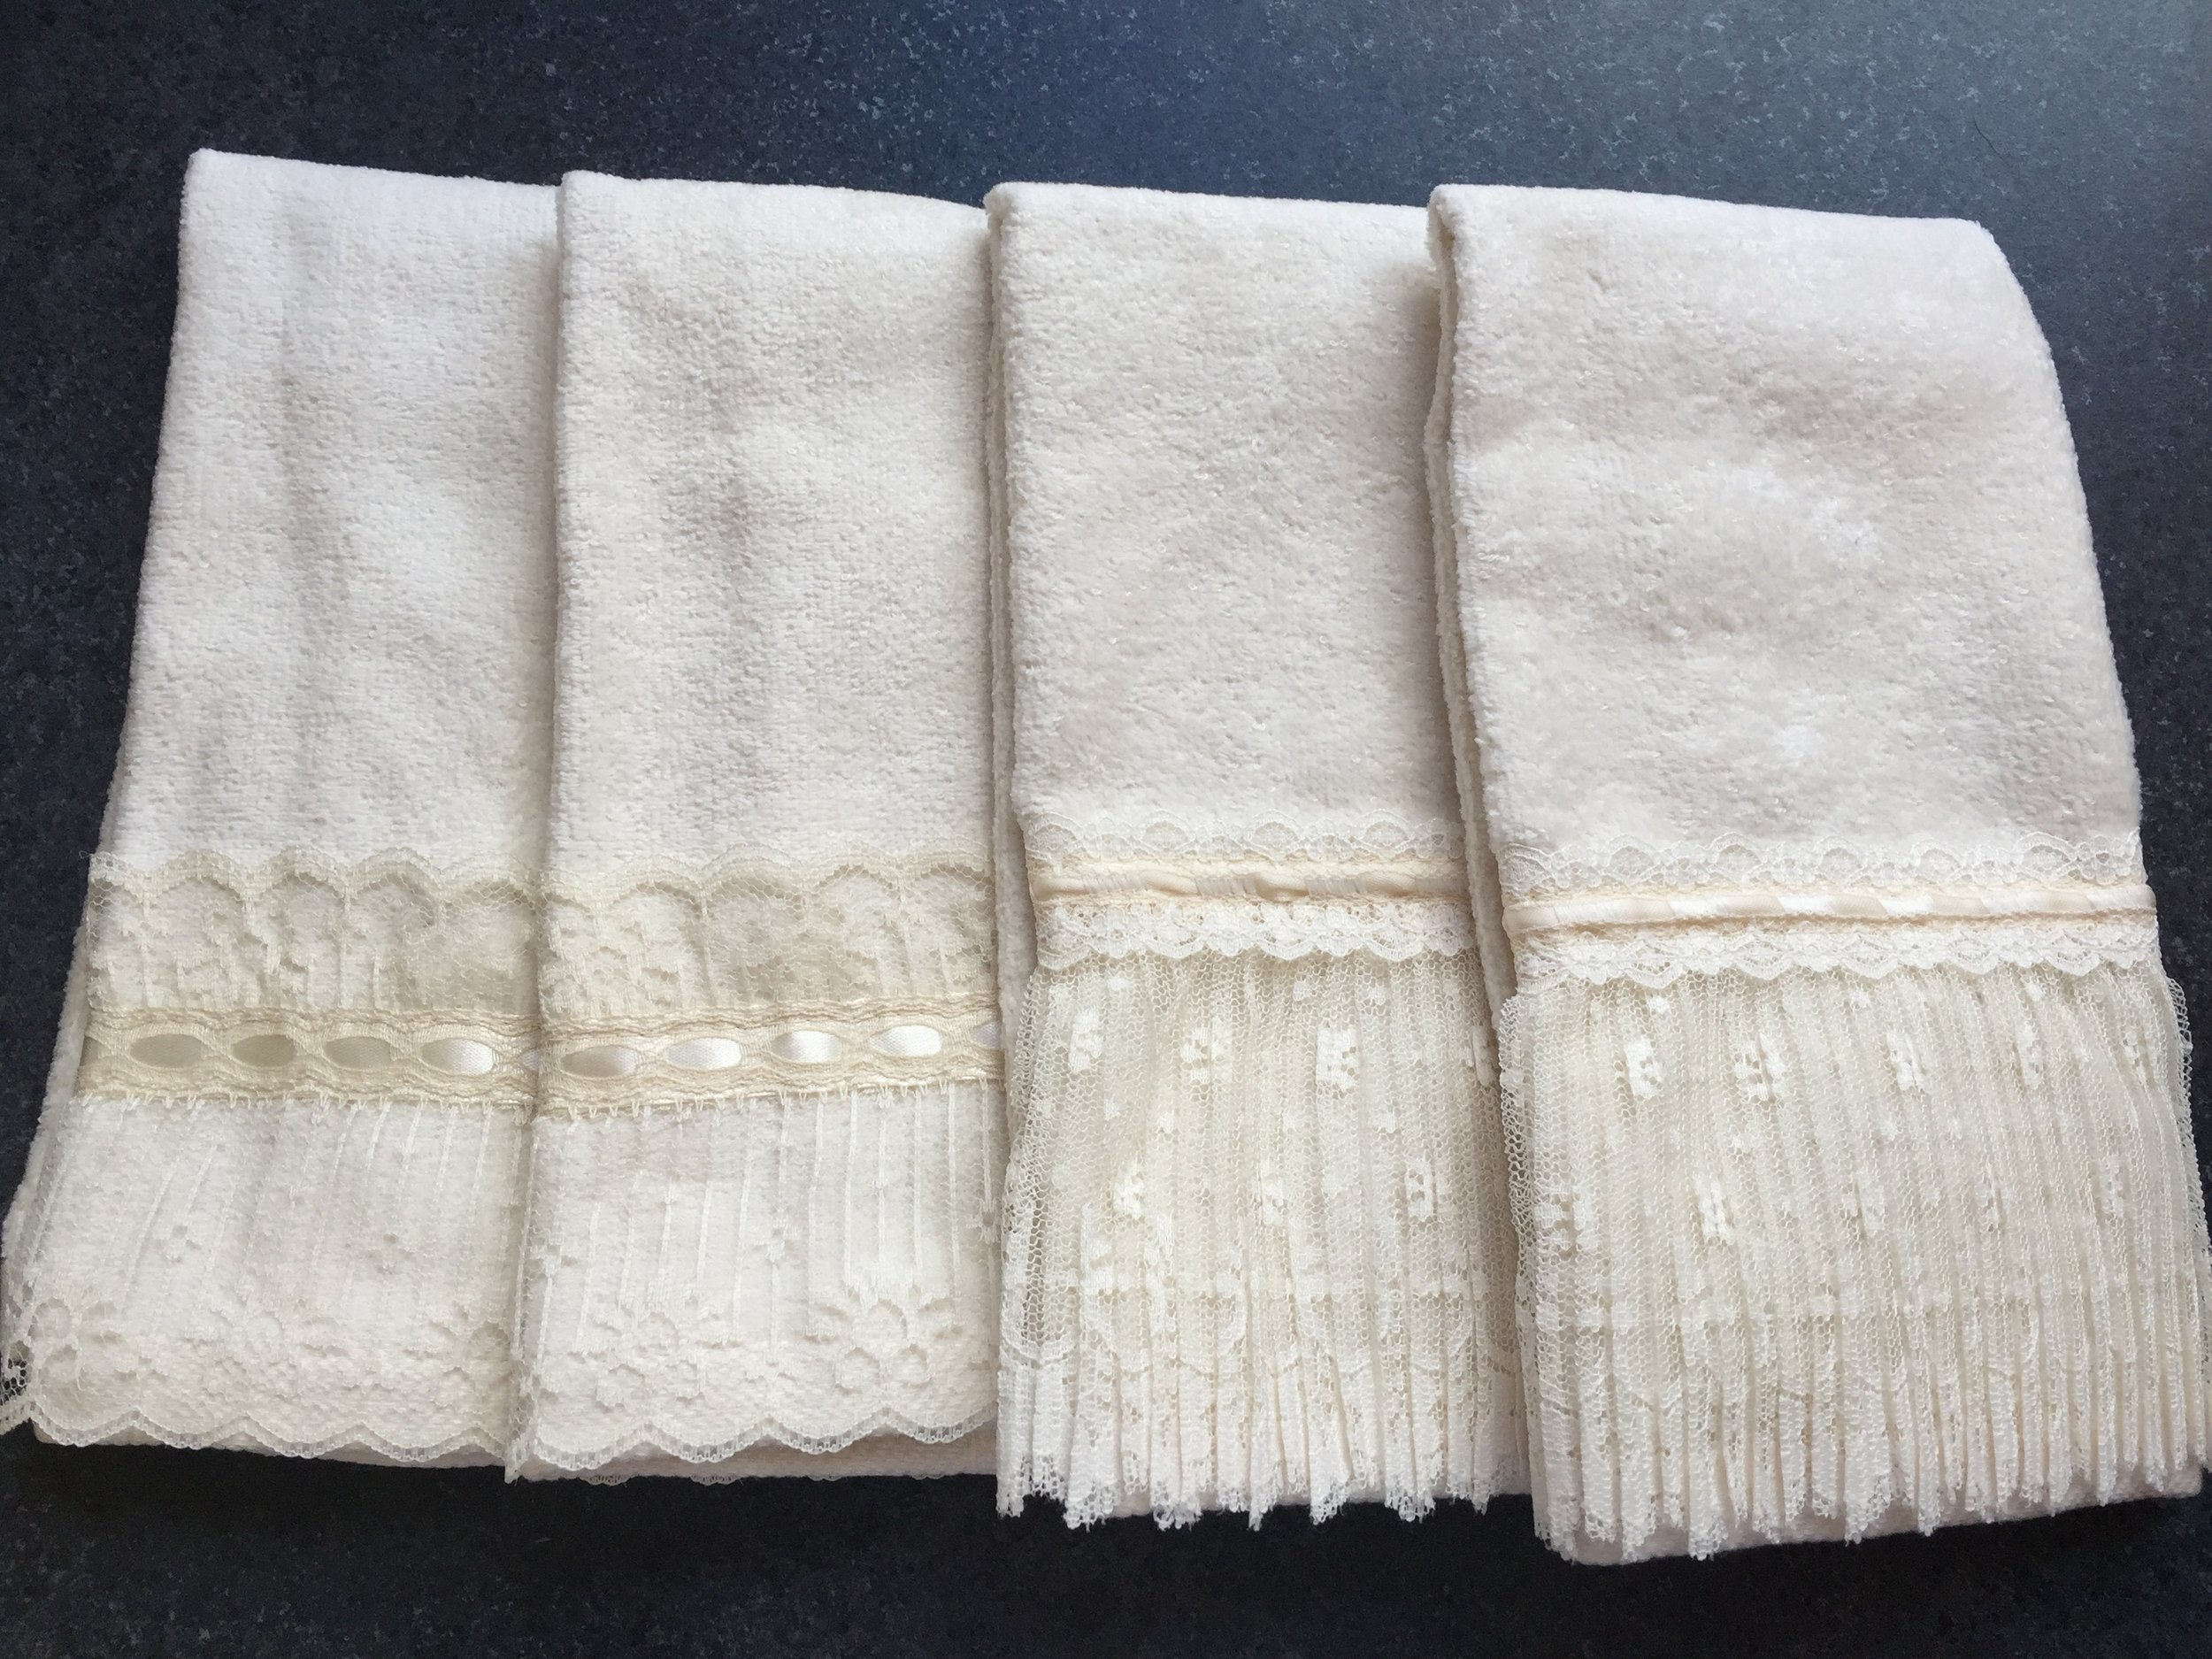 More details: We had these custom fingertip towels made by one of our artisans.